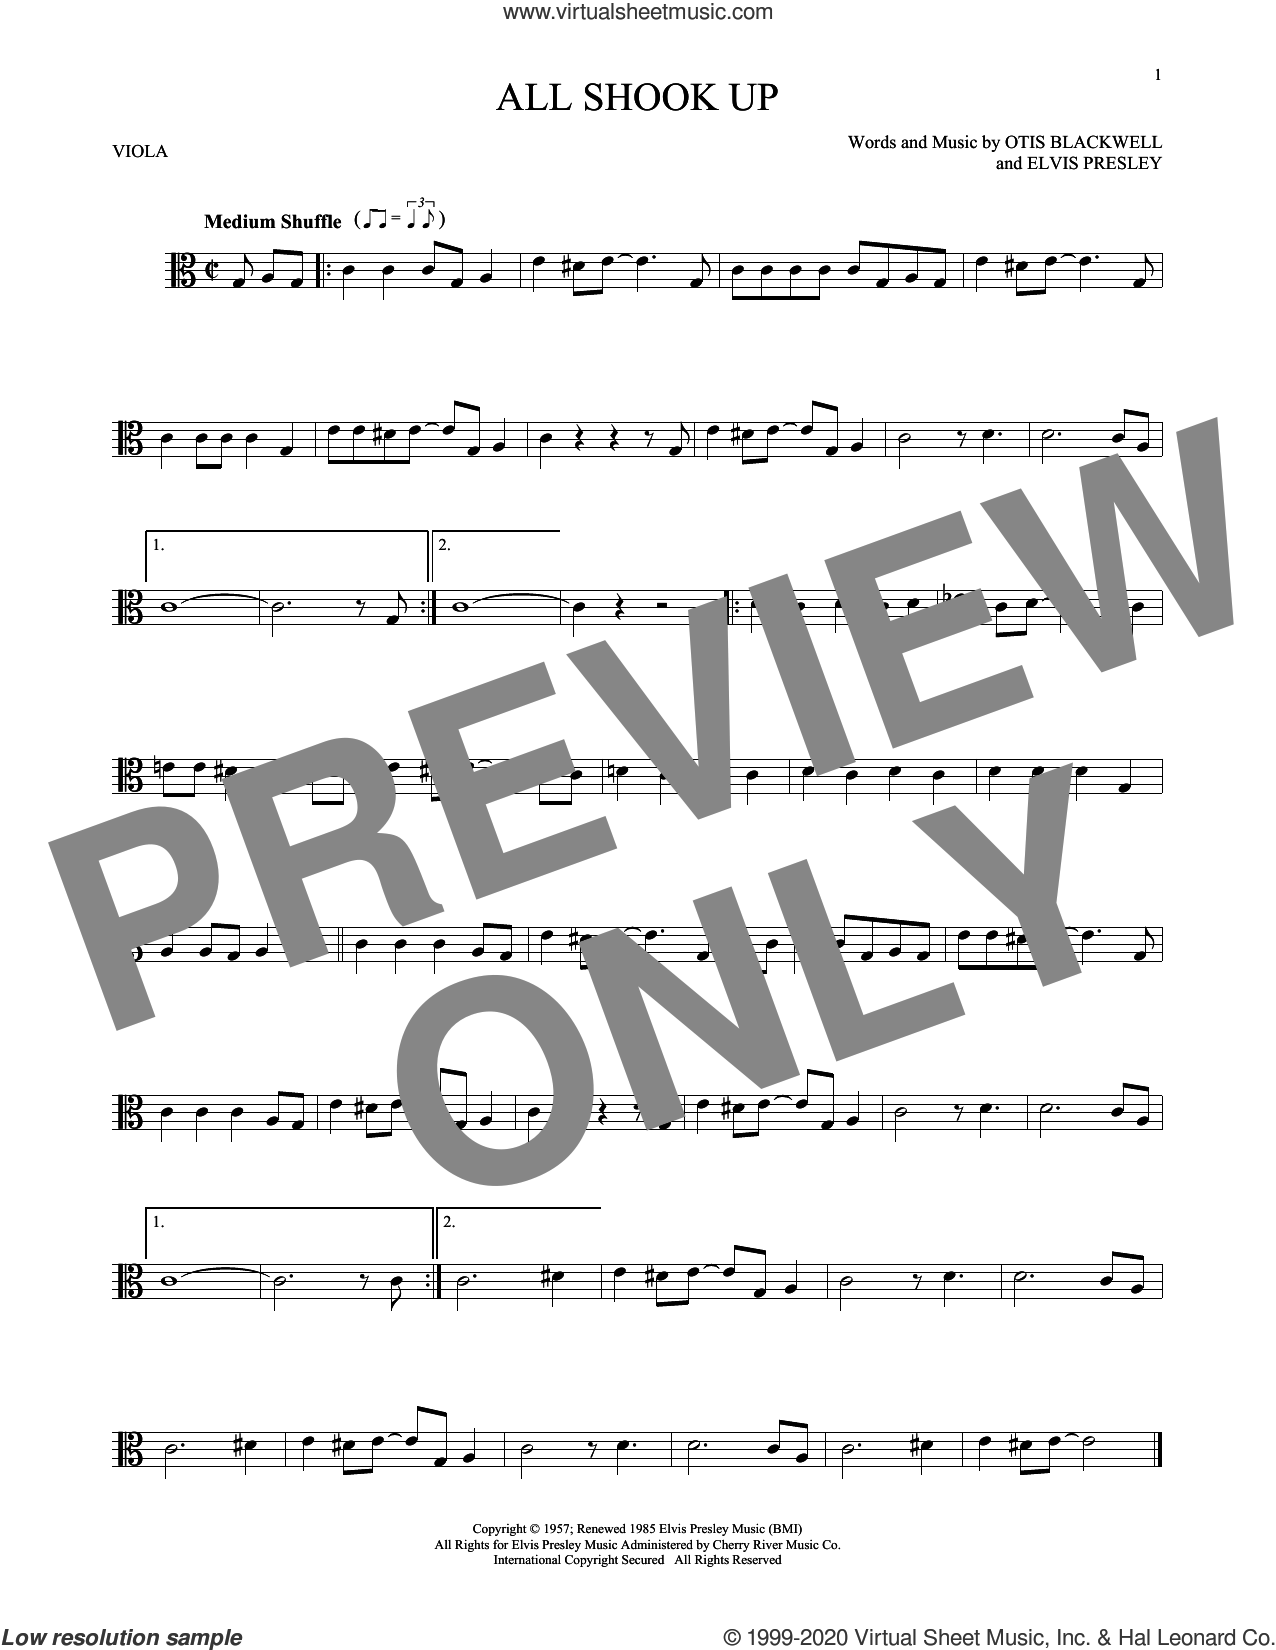 All Shook Up sheet music for viola solo by Elvis Presley, Suzi Quatro and Otis Blackwell, intermediate skill level